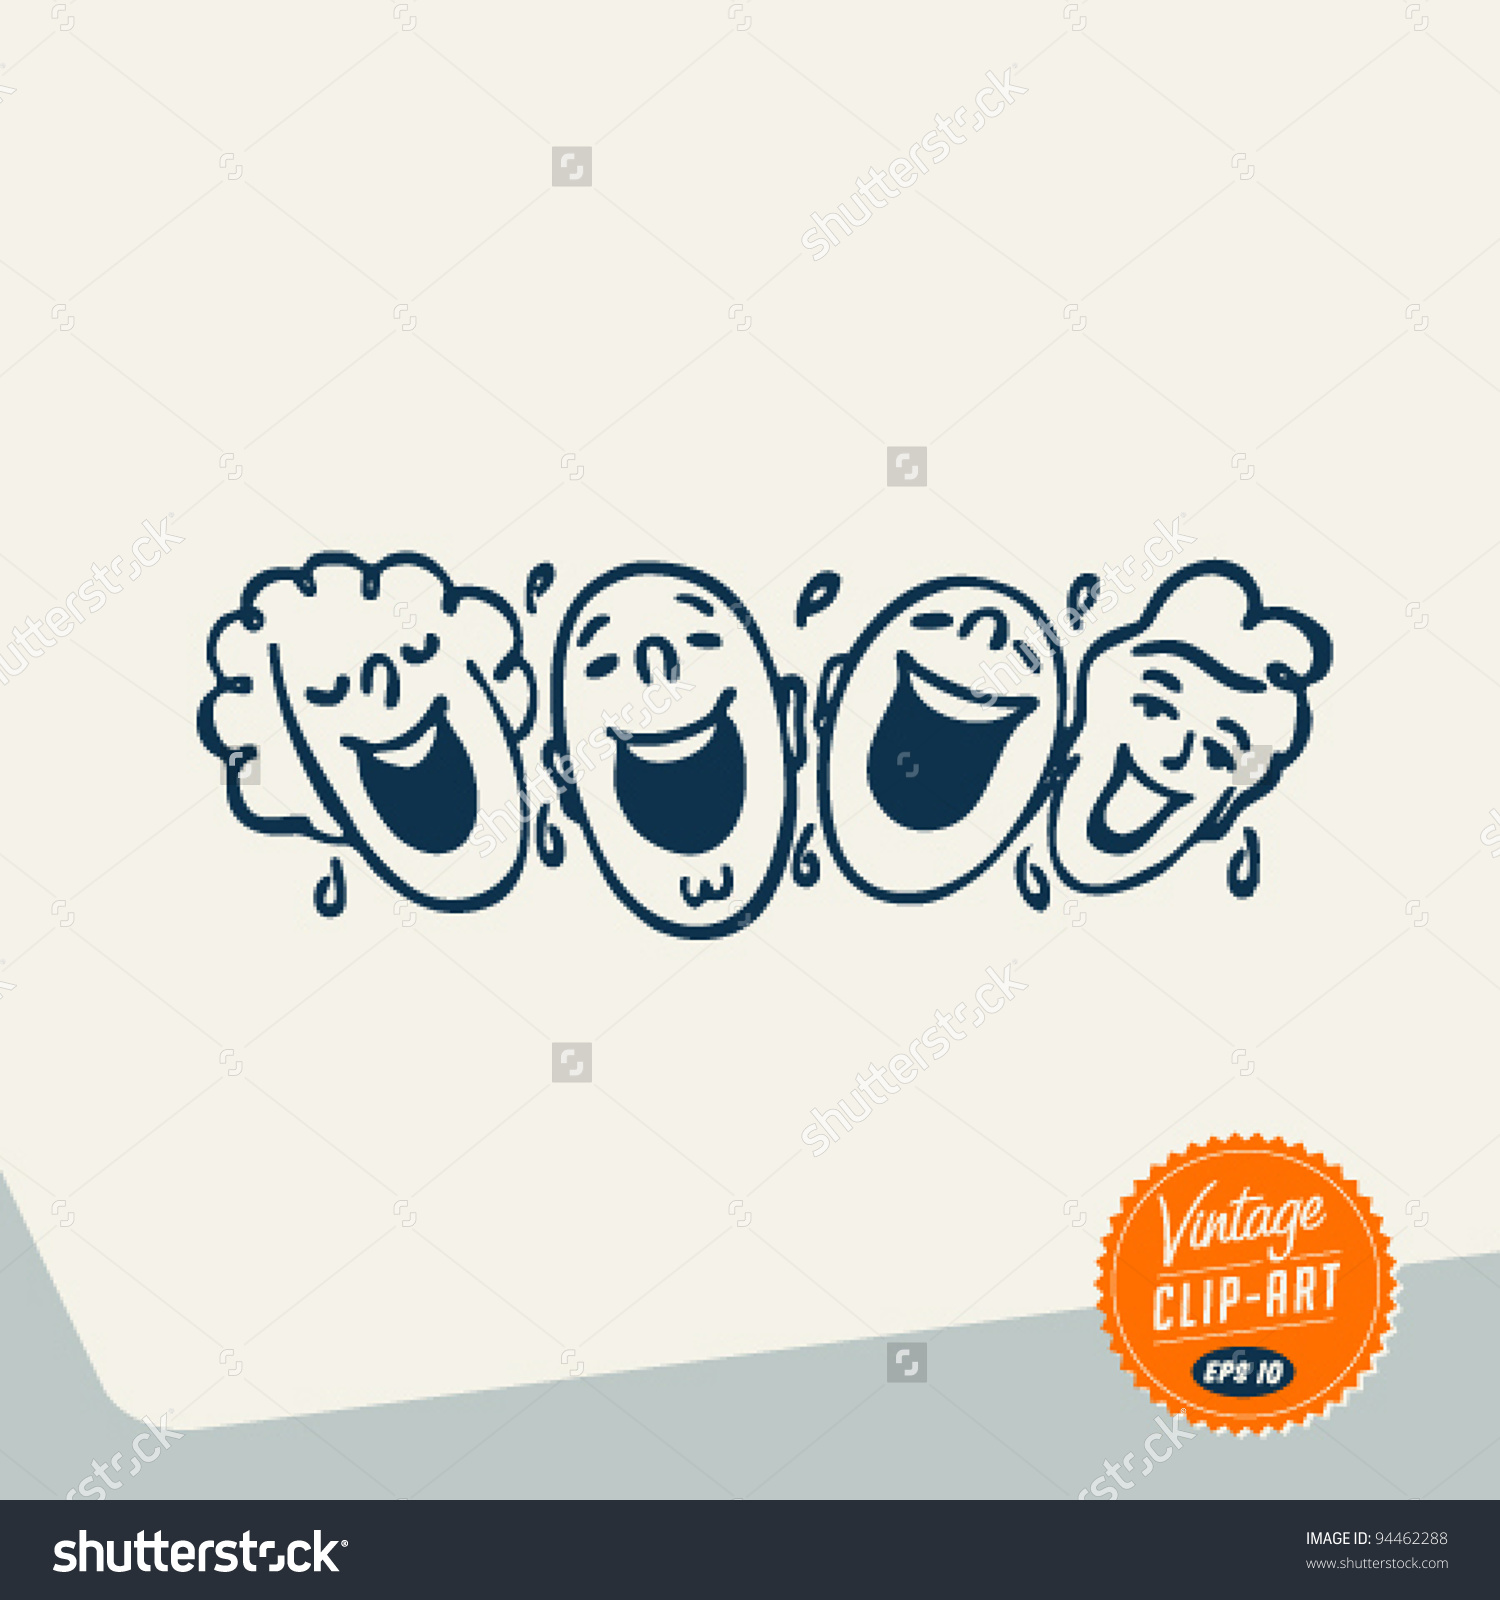 Clipart laughing people graphic transparent stock Vintage Clip Art People Laughing Out Stock Vector 94462288 ... graphic transparent stock